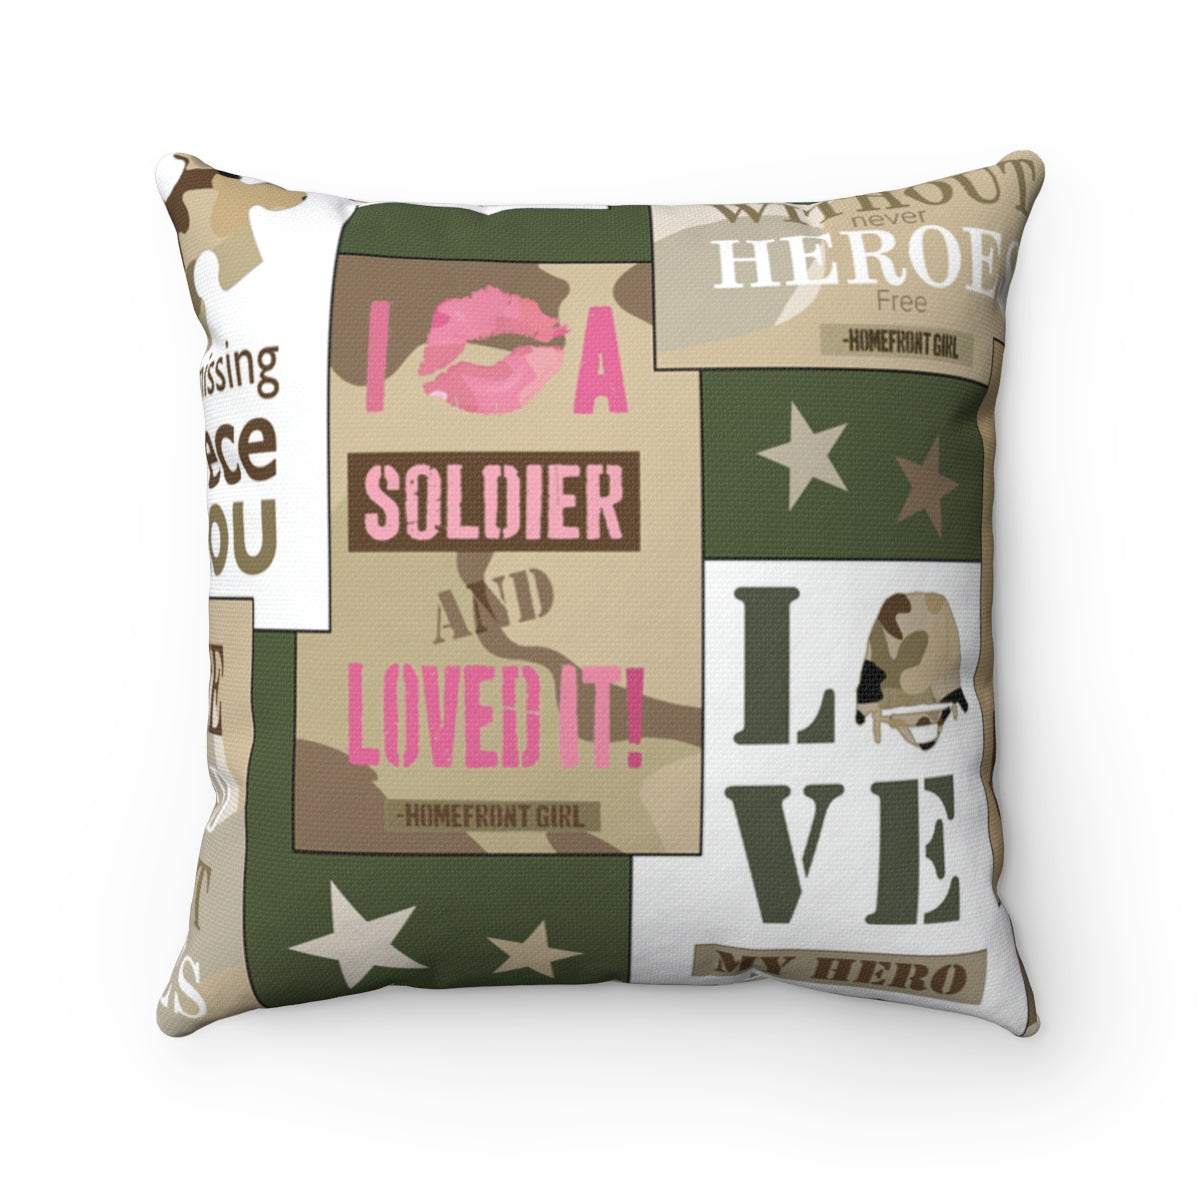 Signature Homefront Girl® HERO Patch design - Spun Polyester Square Pillow